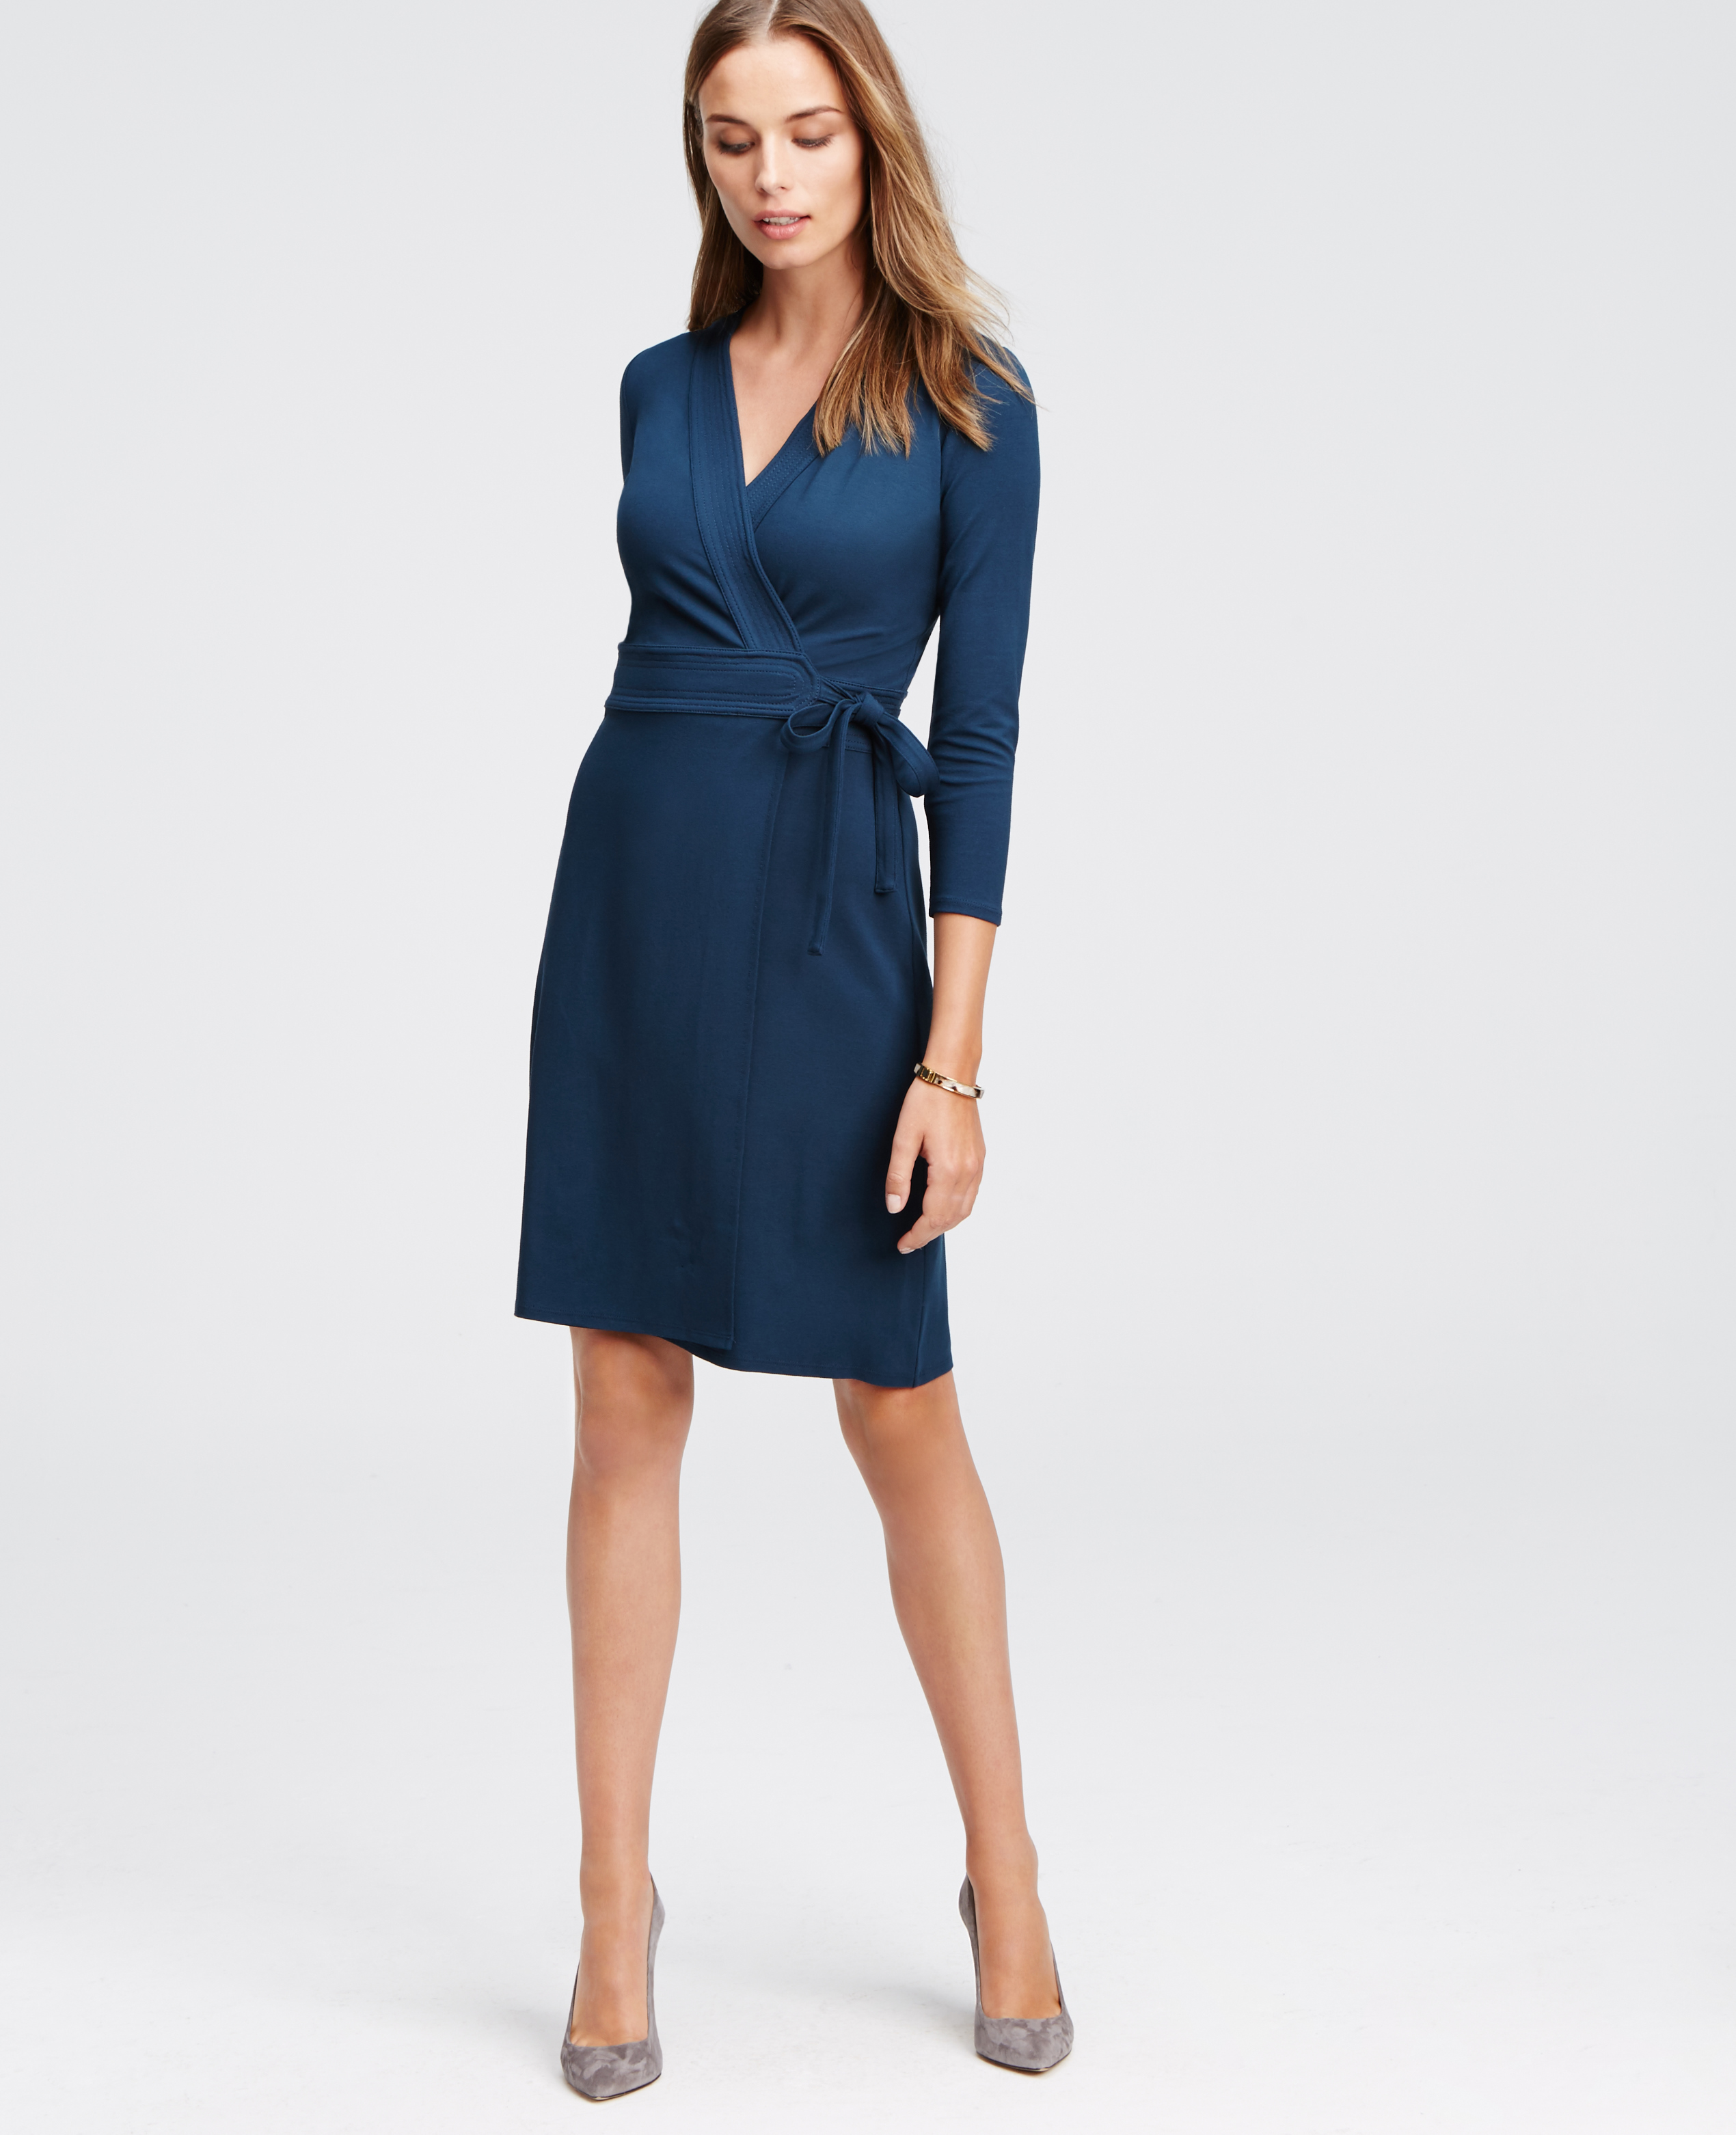 Ann taylor Petite 3/4 Sleeve Wrap Dress in Blue | Lyst